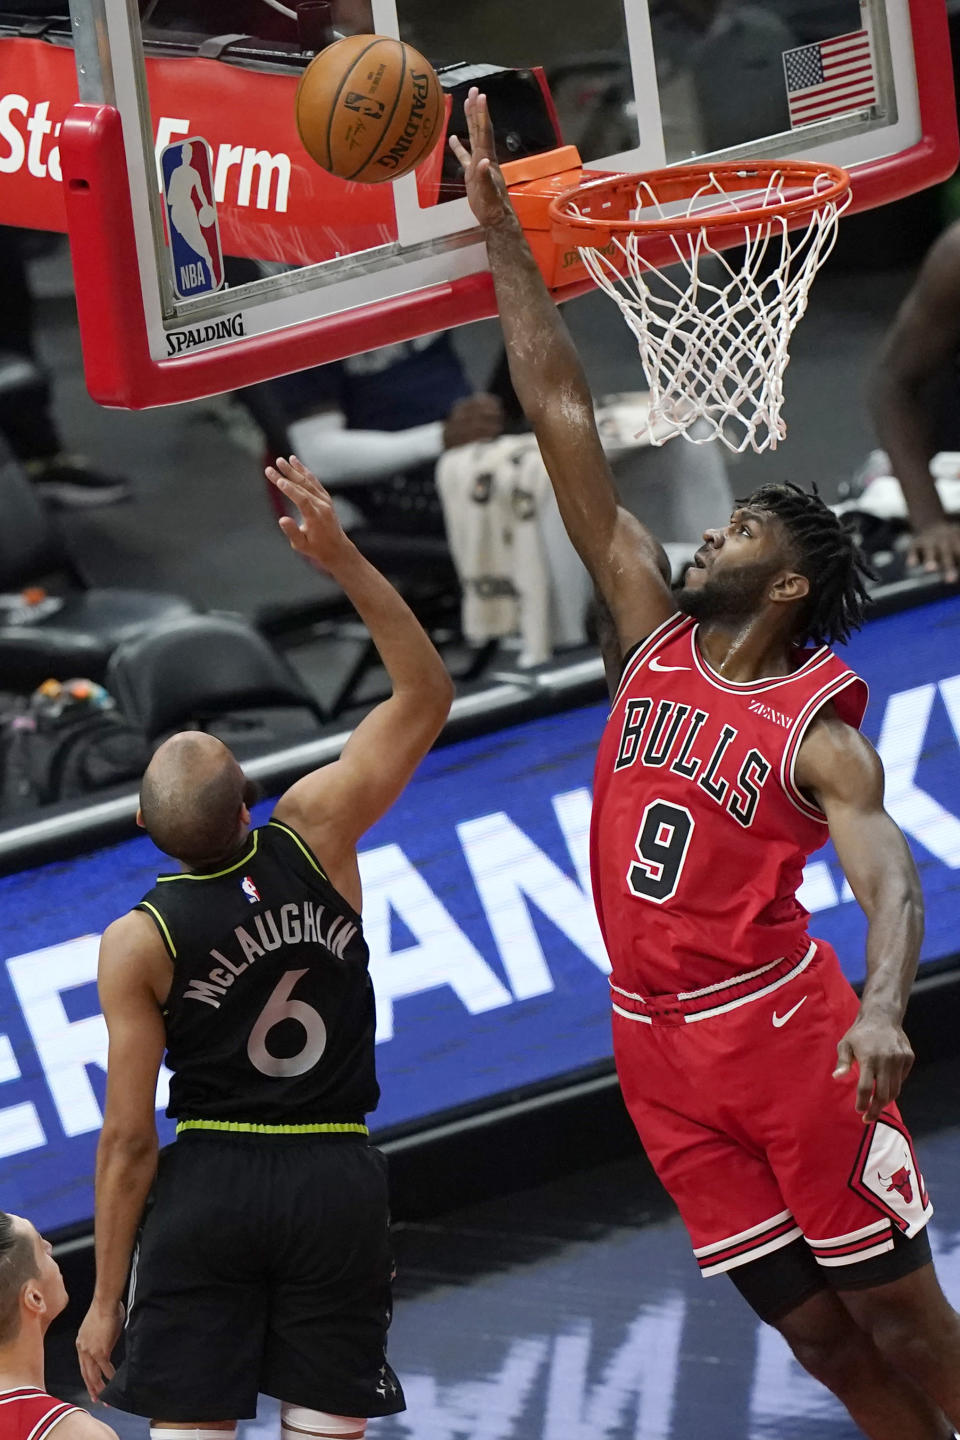 Chicago Bulls forward Patrick Williams, right, blocks a shot by Minnesota Timberwolves guard Jordan McLaughlin during the first half of an NBA basketball game in Chicago, Wednesday, Feb. 24, 2021. (AP Photo/Nam Y. Huh)